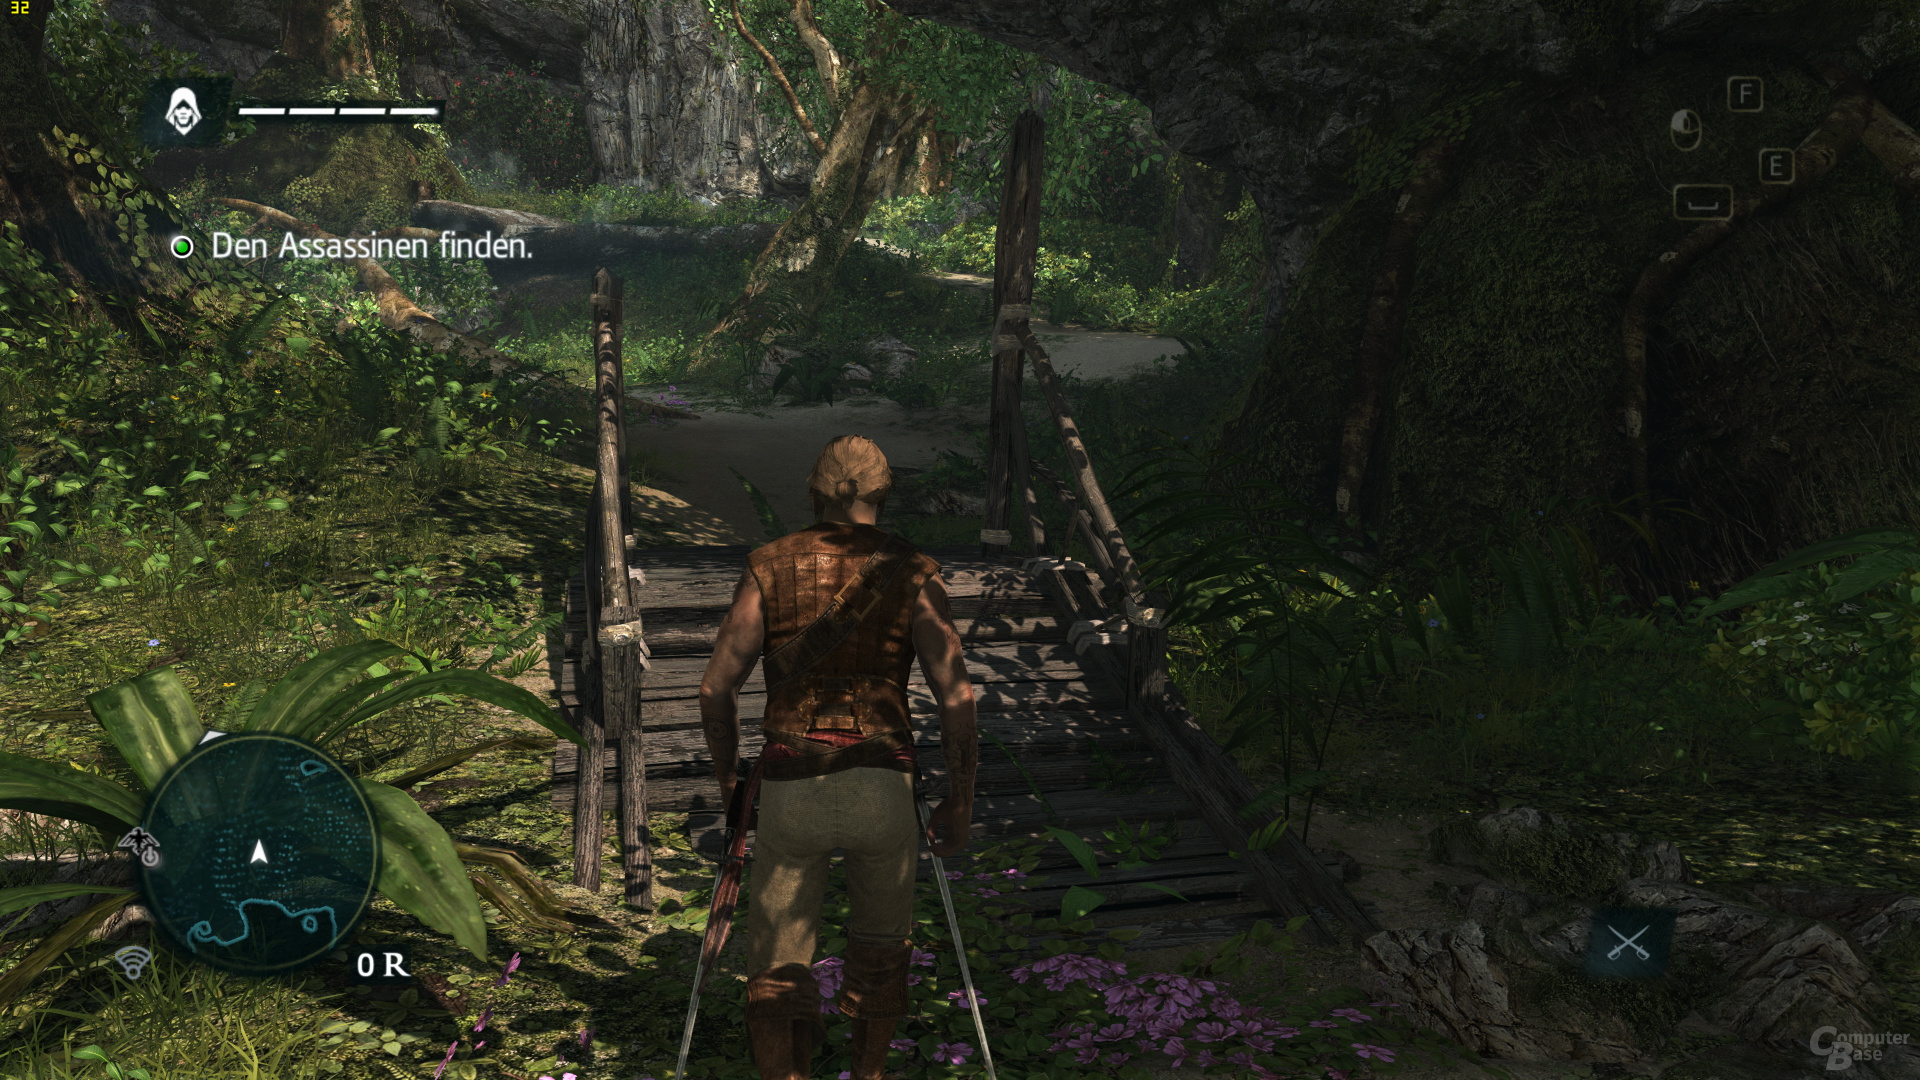 Assassin's Creed 4 - 4× DSR & 0 % Smoothness